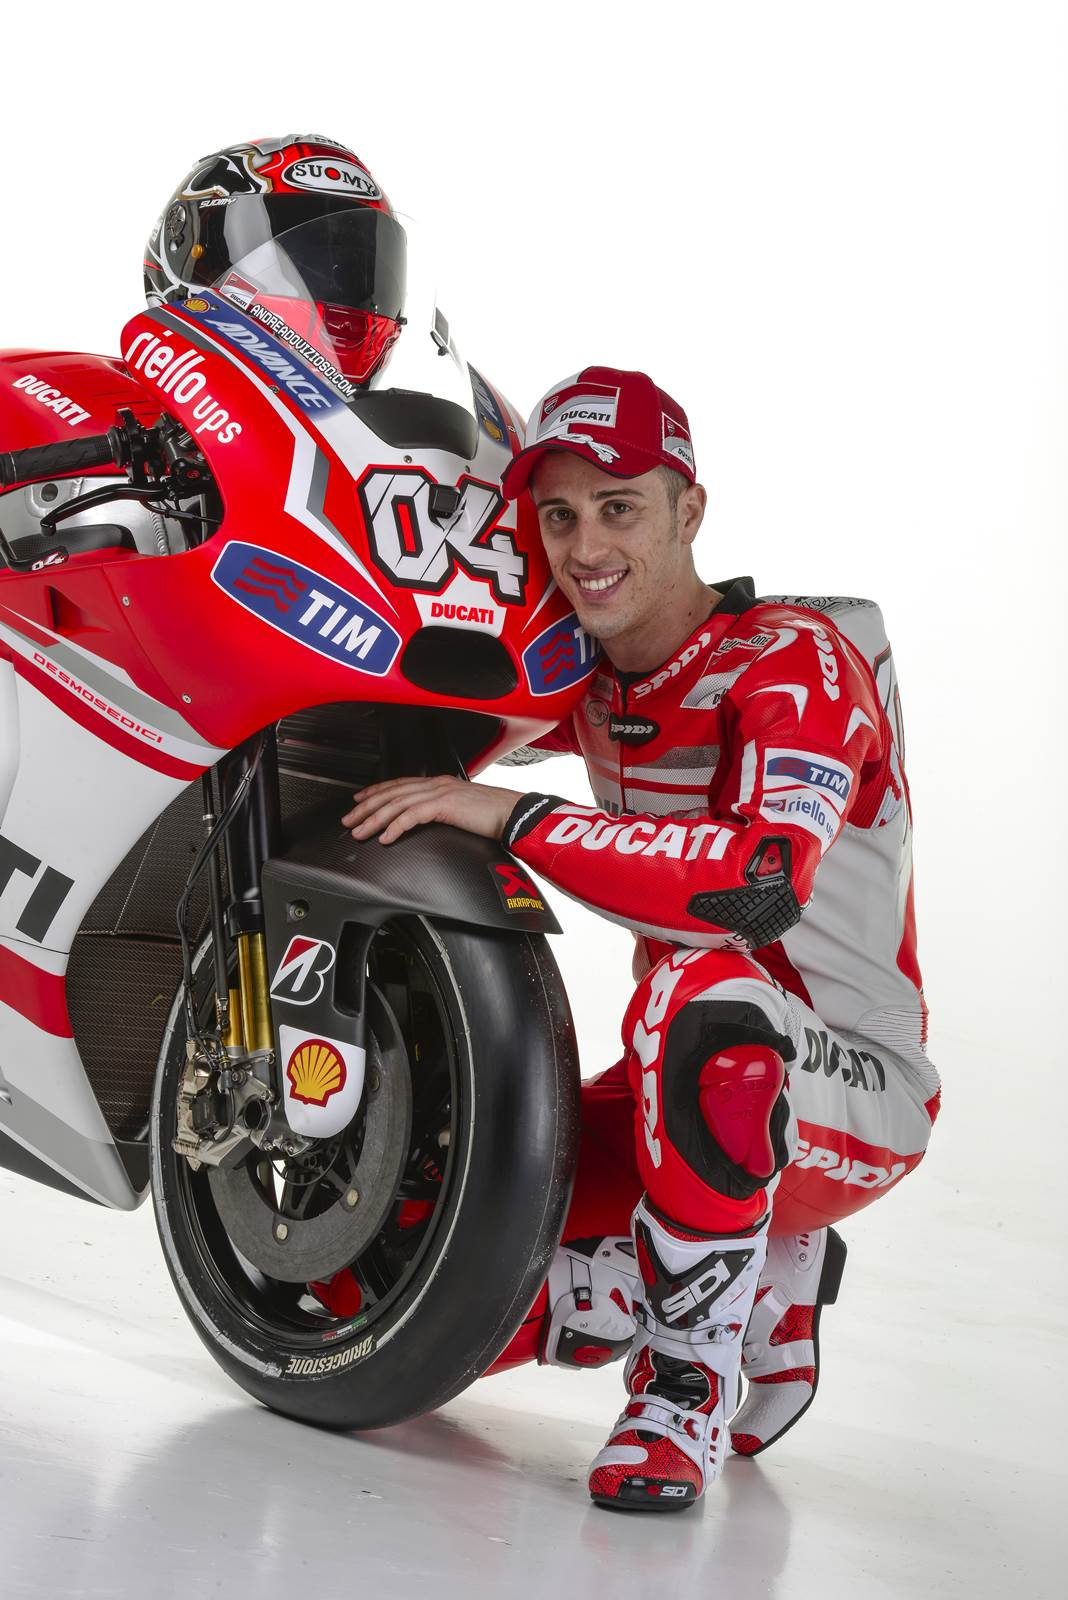 Andrea Dovizioso on his Ducati GP14